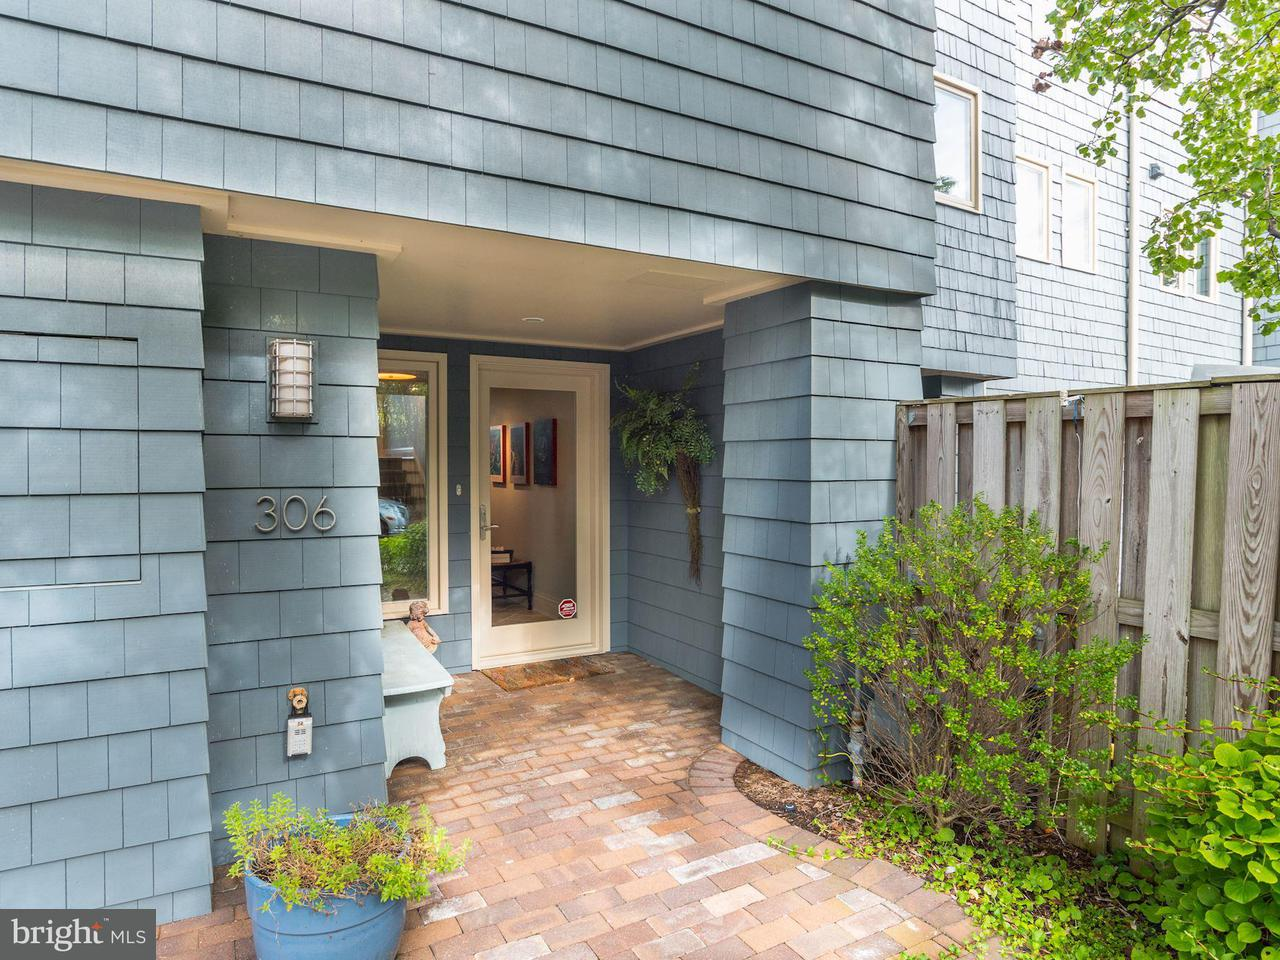 Additional photo for property listing at 306 FIRST Street 306 FIRST Street Annapolis, Maryland 21403 United States